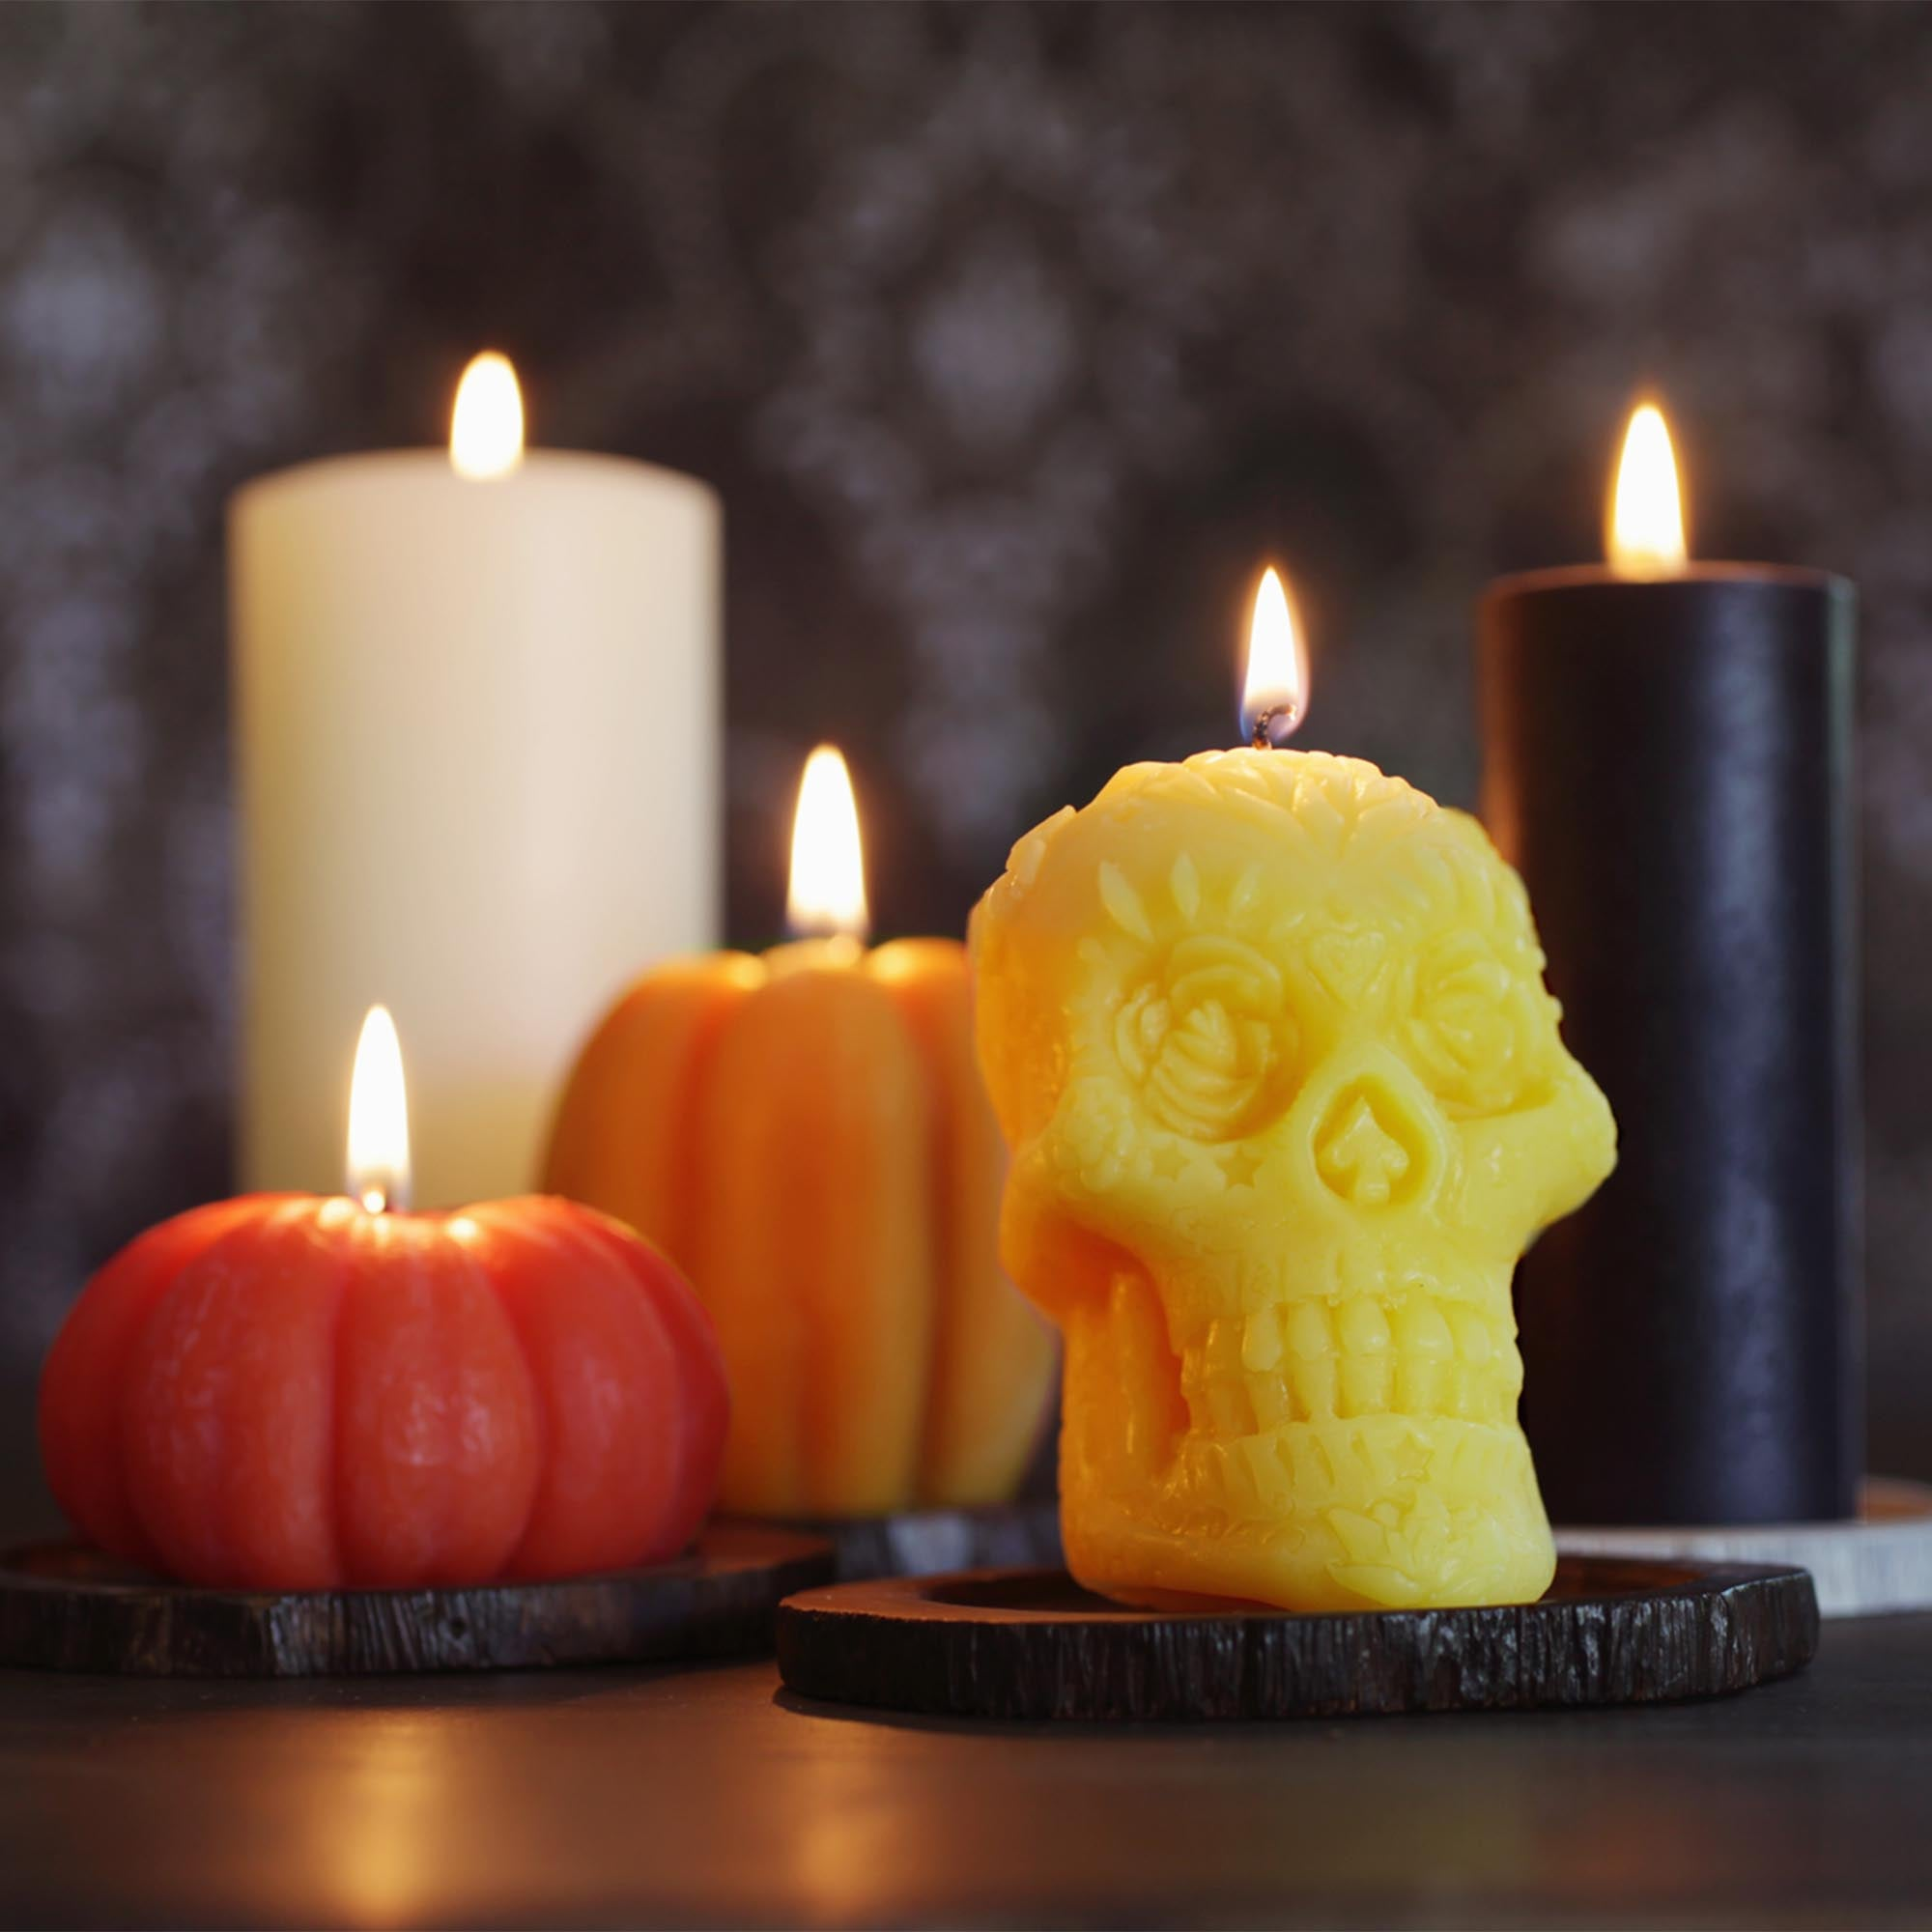 Yellow beeswax skull candle with lit flame, 2 small beeswax pumpkin candles with lit flame, black pillar candle with lit flame, white pillar candle with lit flame